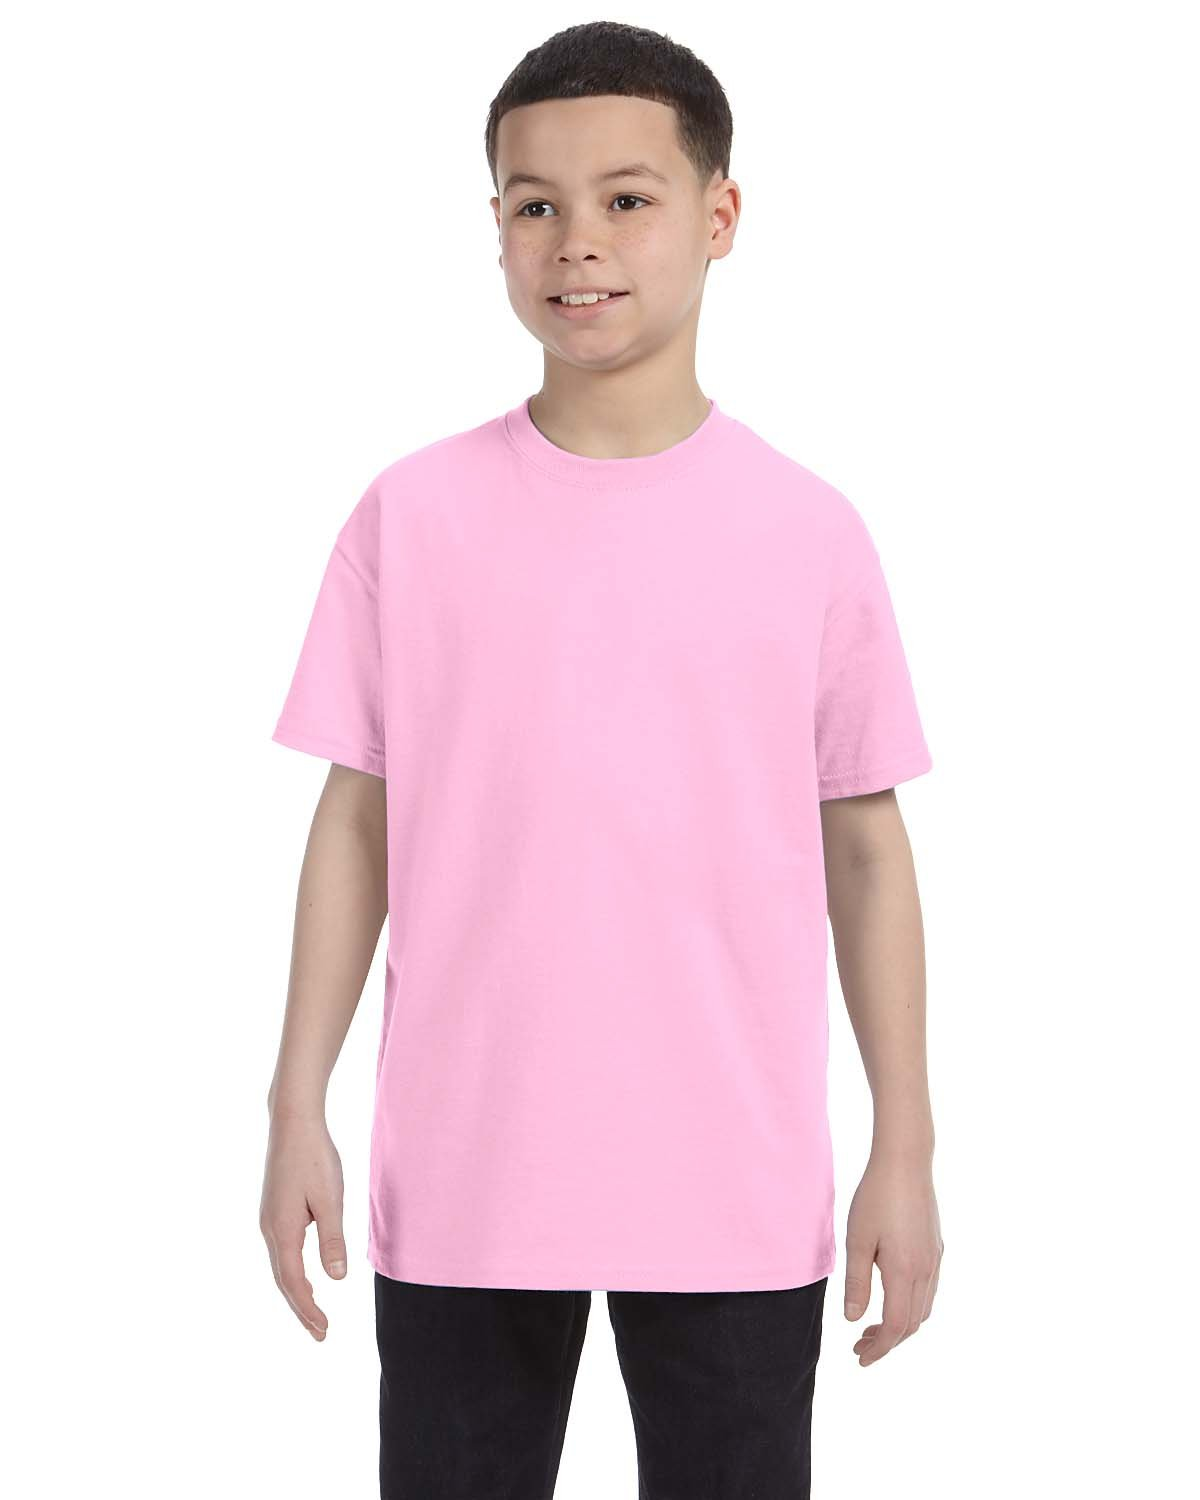 Indica Plateau Youth Nothing Niño is Impossible Youth - Playera ...